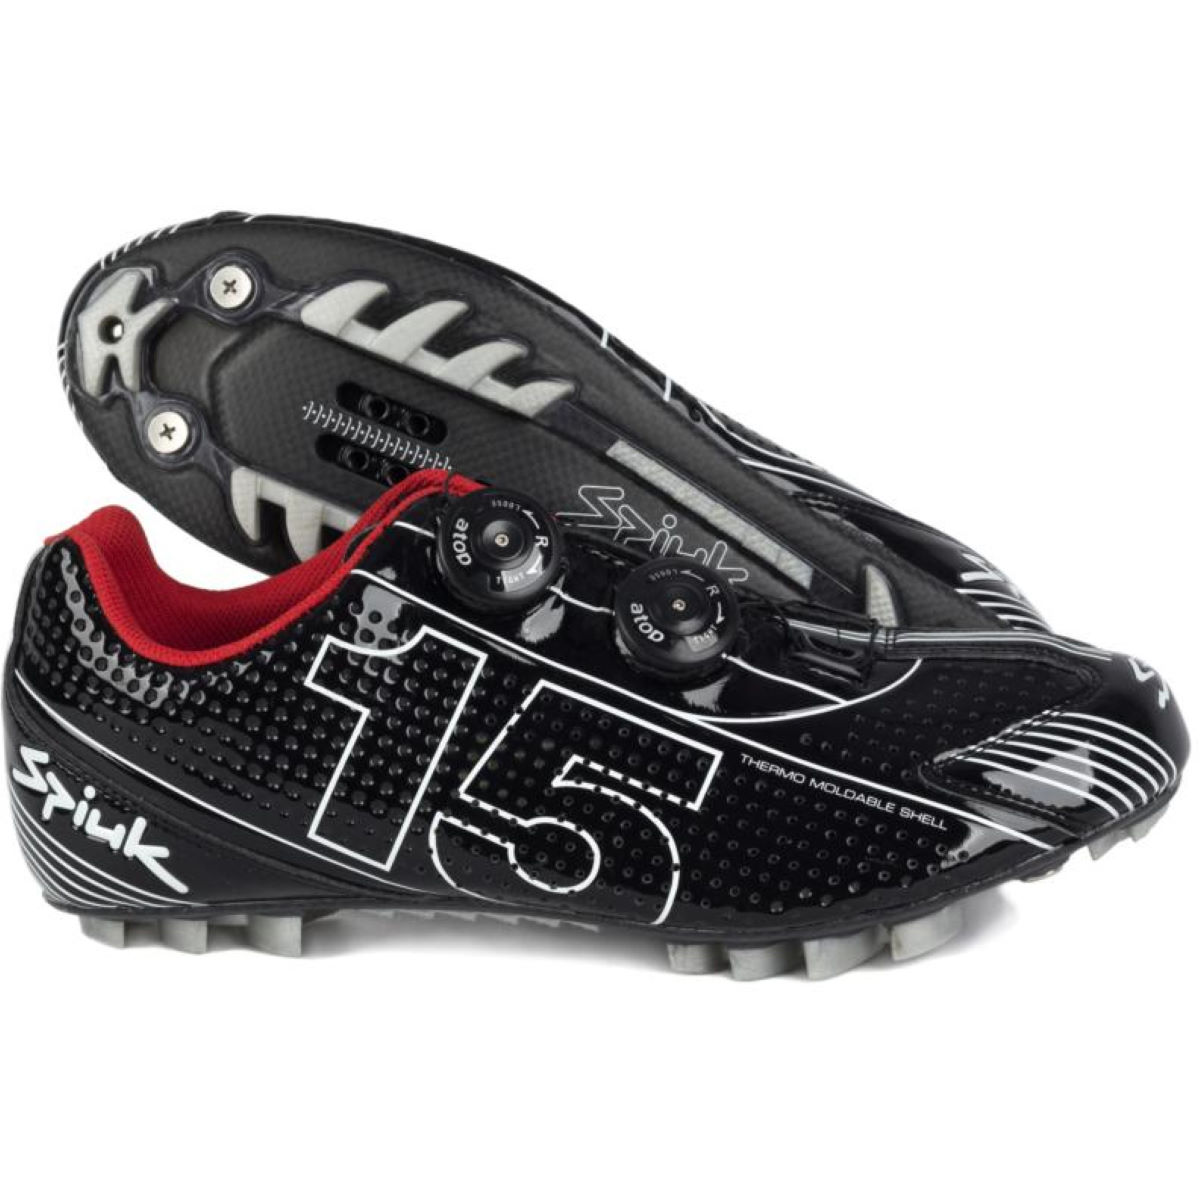 Spiuk ZS15MC MTB Shoes - 44 Black | Offroad Shoes